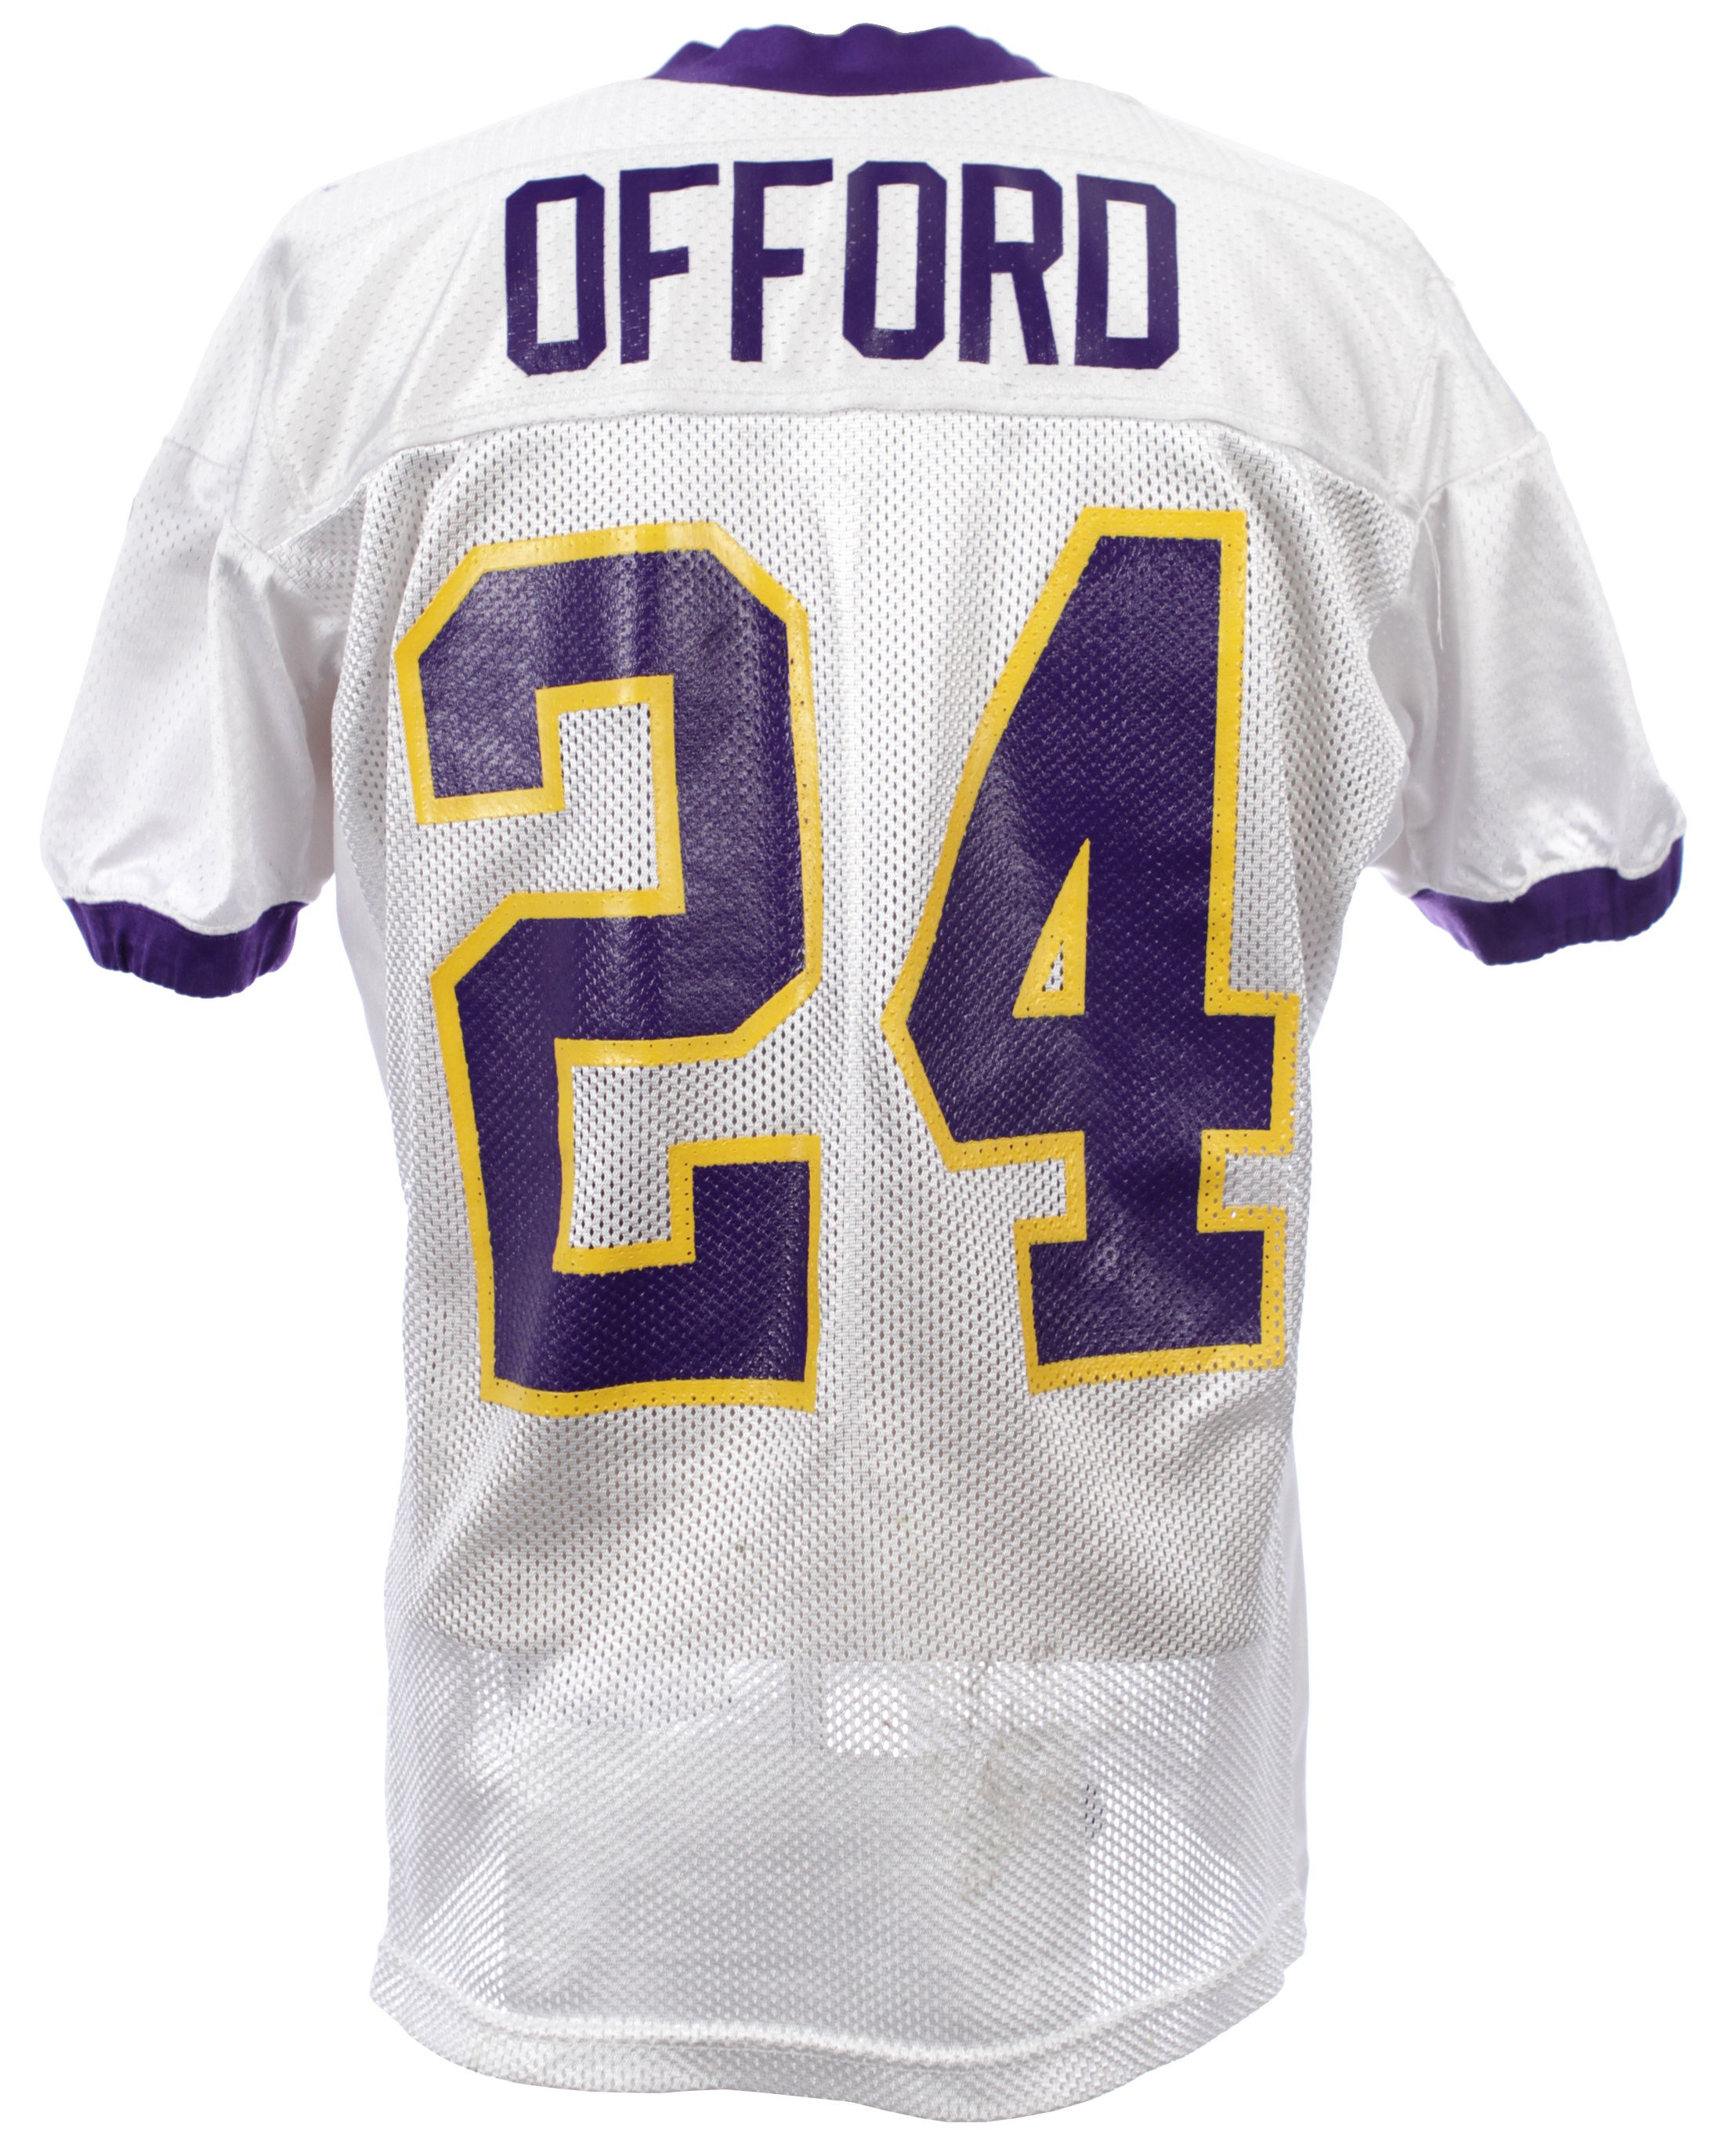 Jersey Willie Vikings - Lot Minnesota Offord 2005 Practice Loa mears Detail